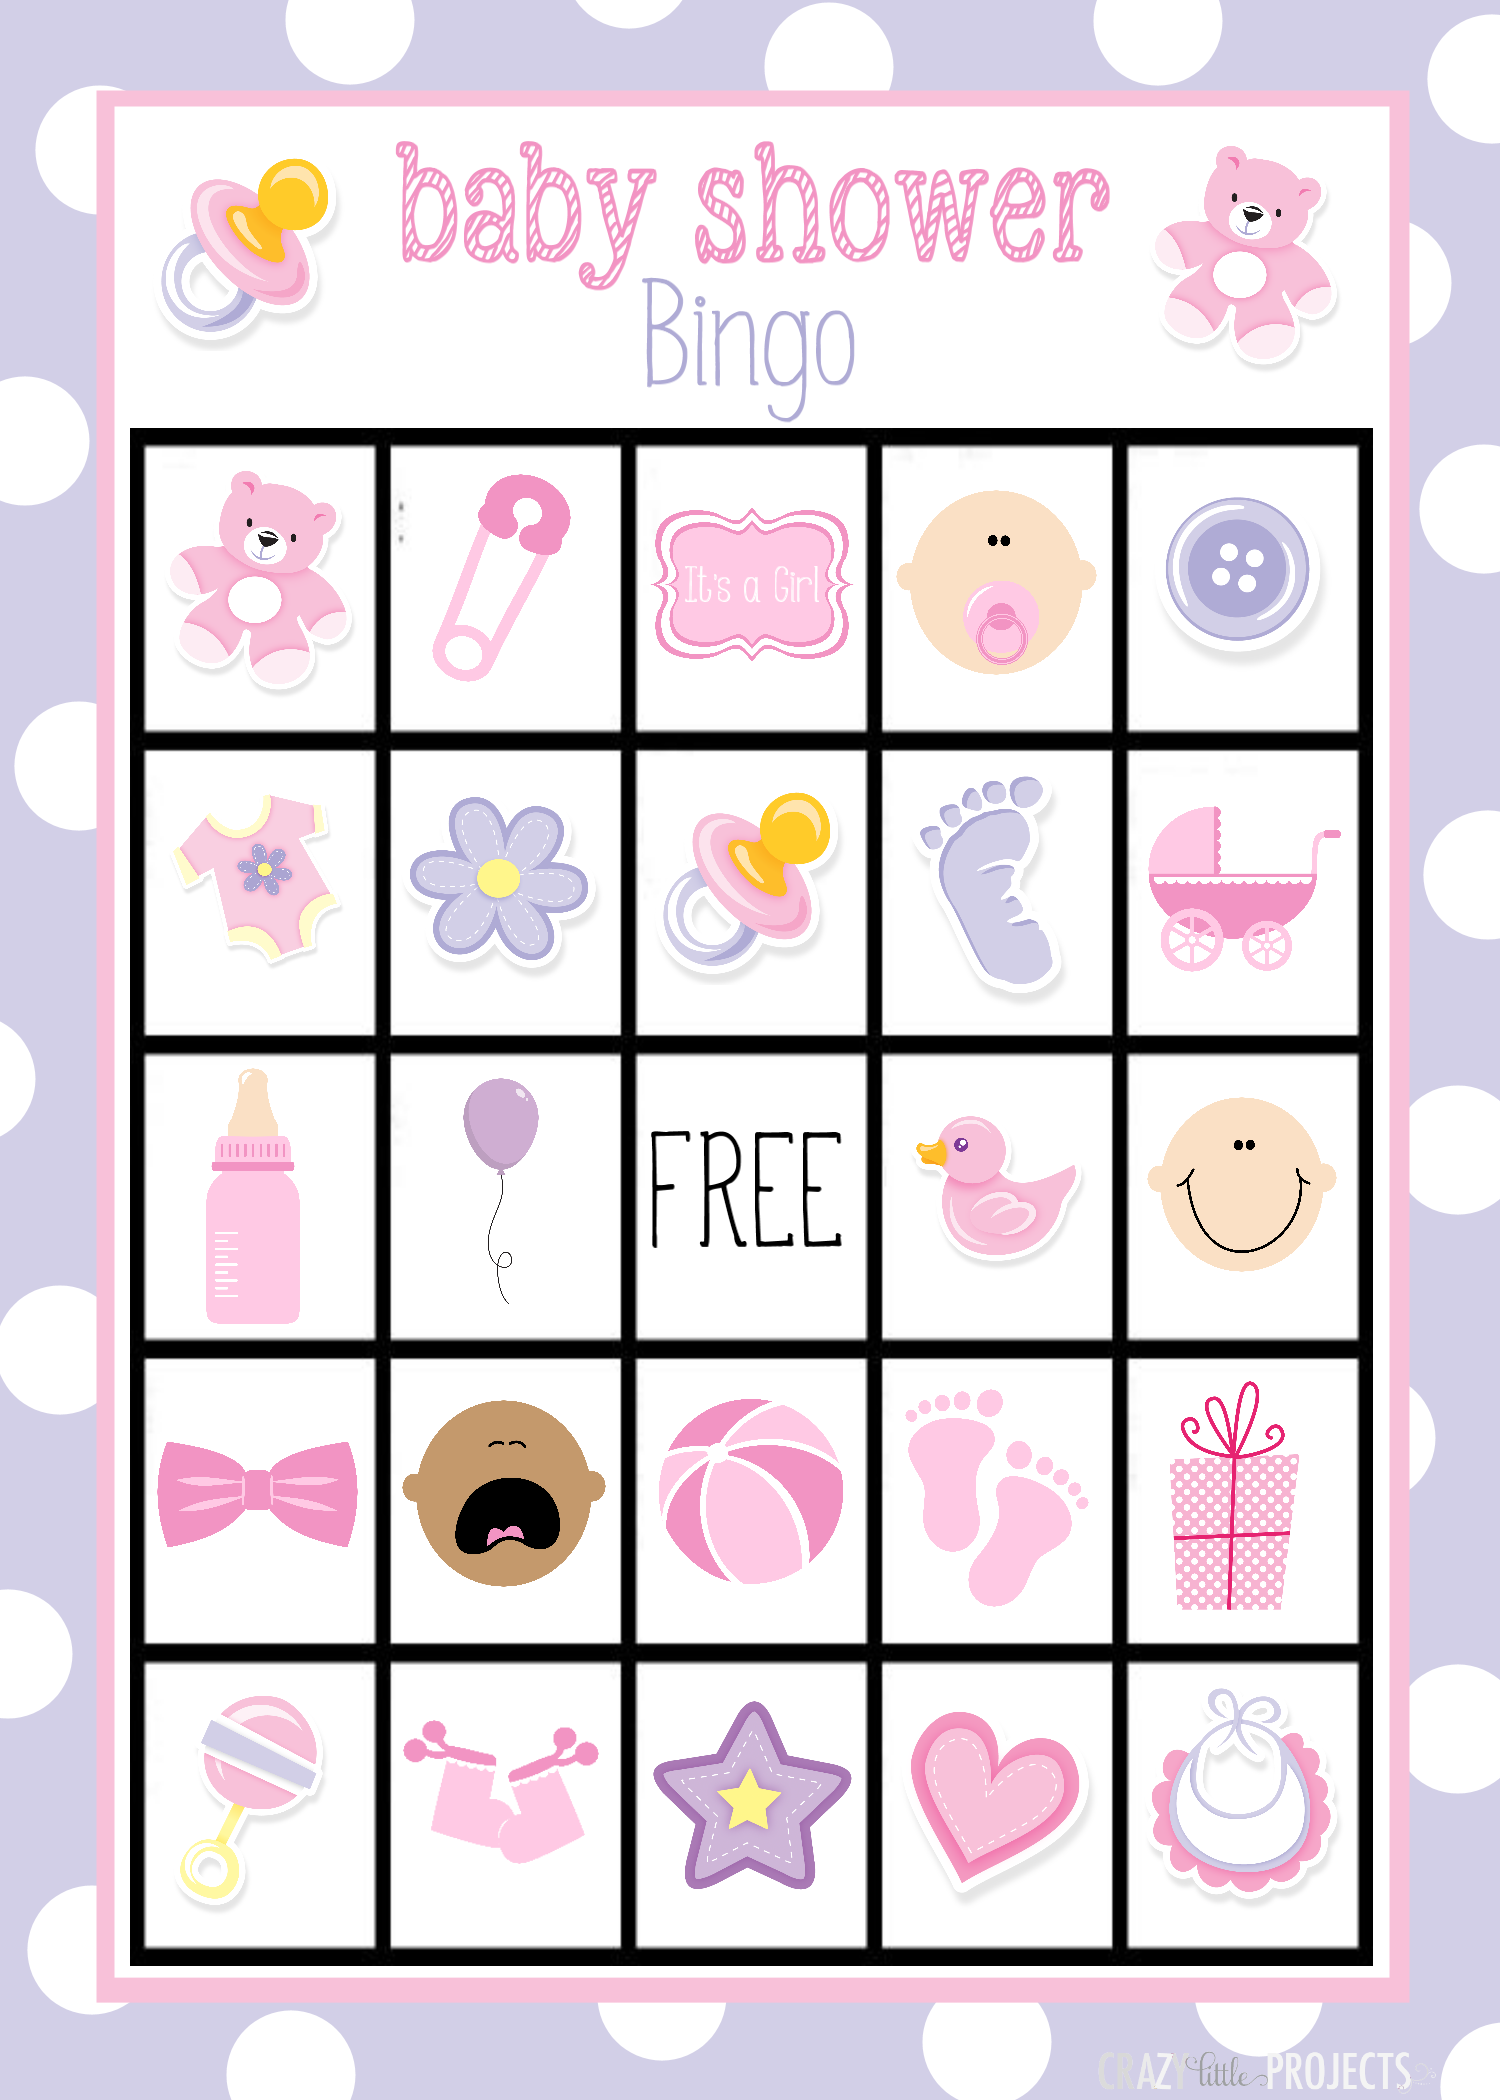 Print out these baby shower bingo cards to play at your baby shower. Also blank  cards available to play baby gift bingo.